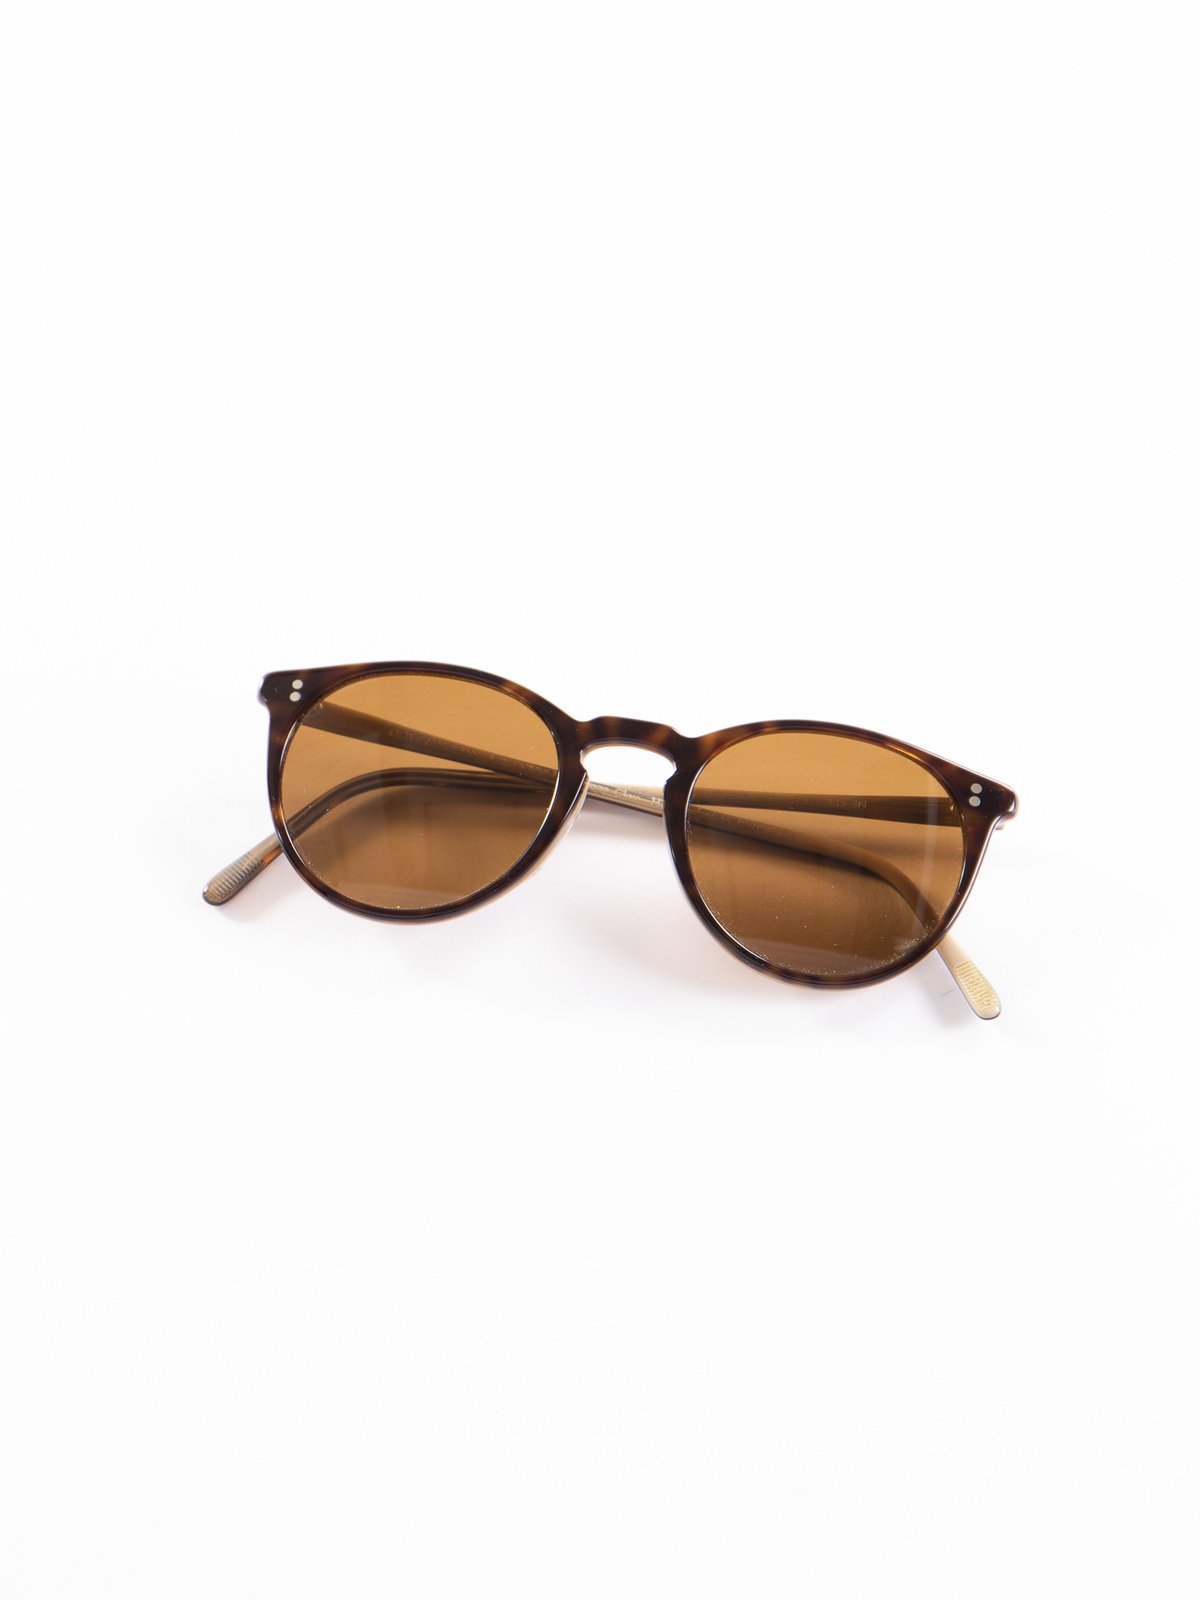 362–Horn/Brown O'Malley Sunglasses - Image 1